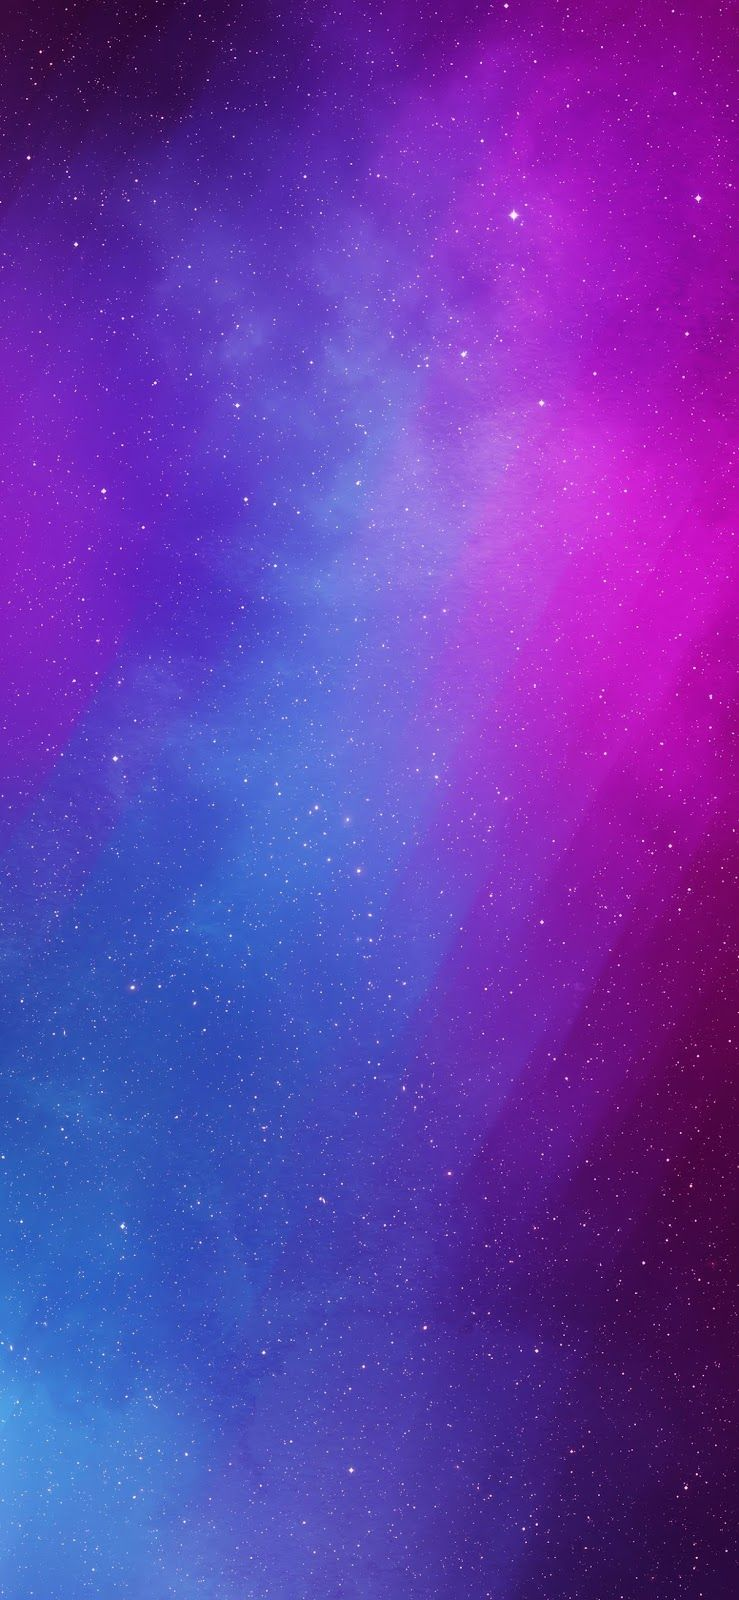 Colorful Stars Iphone Xs Max Wallpaper Fond D Ecran Iphone Fond